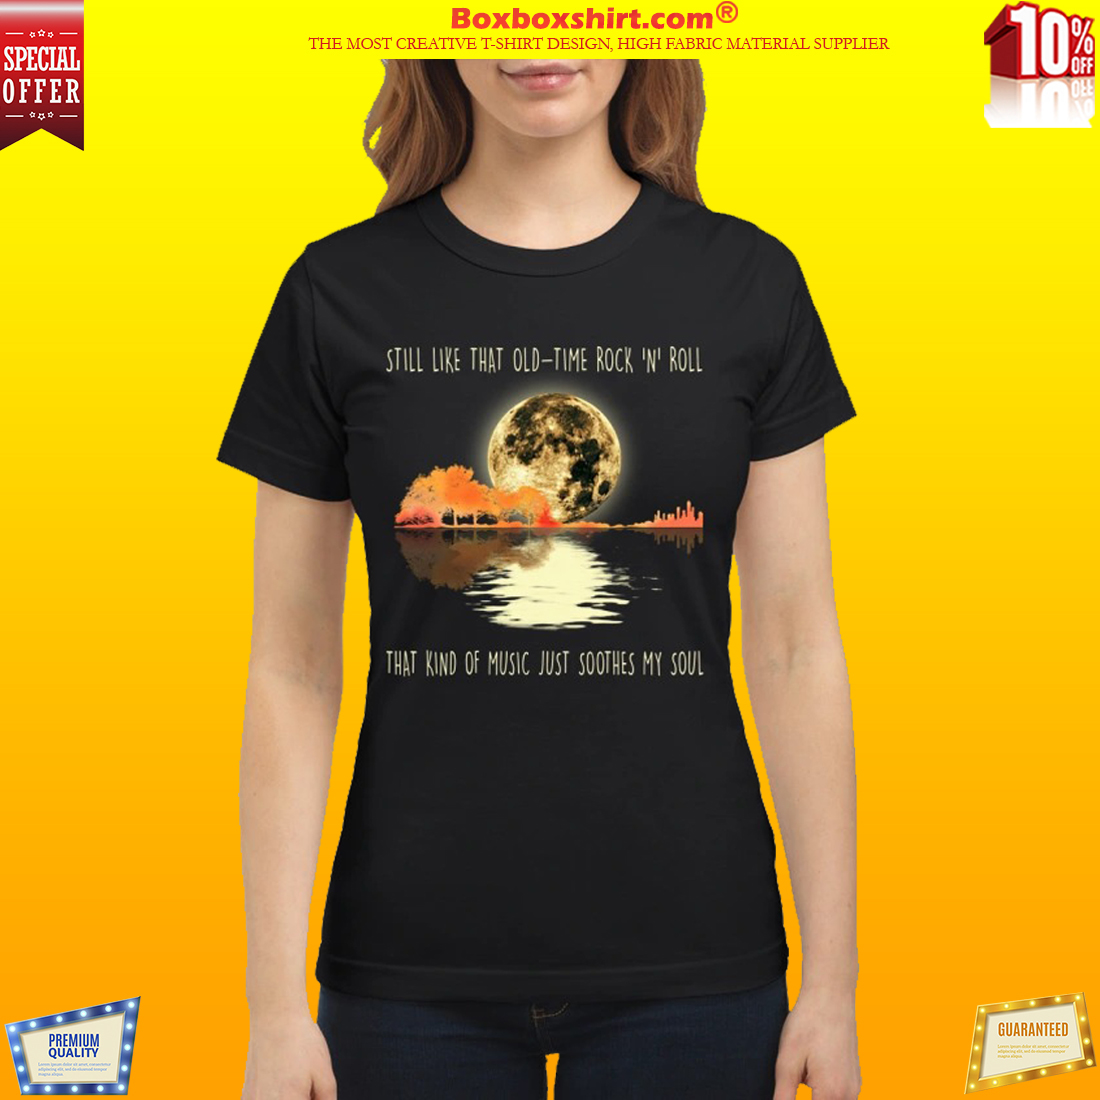 14a536ef NEWEST] Guitar and moon still like that old time rock and roll shirt